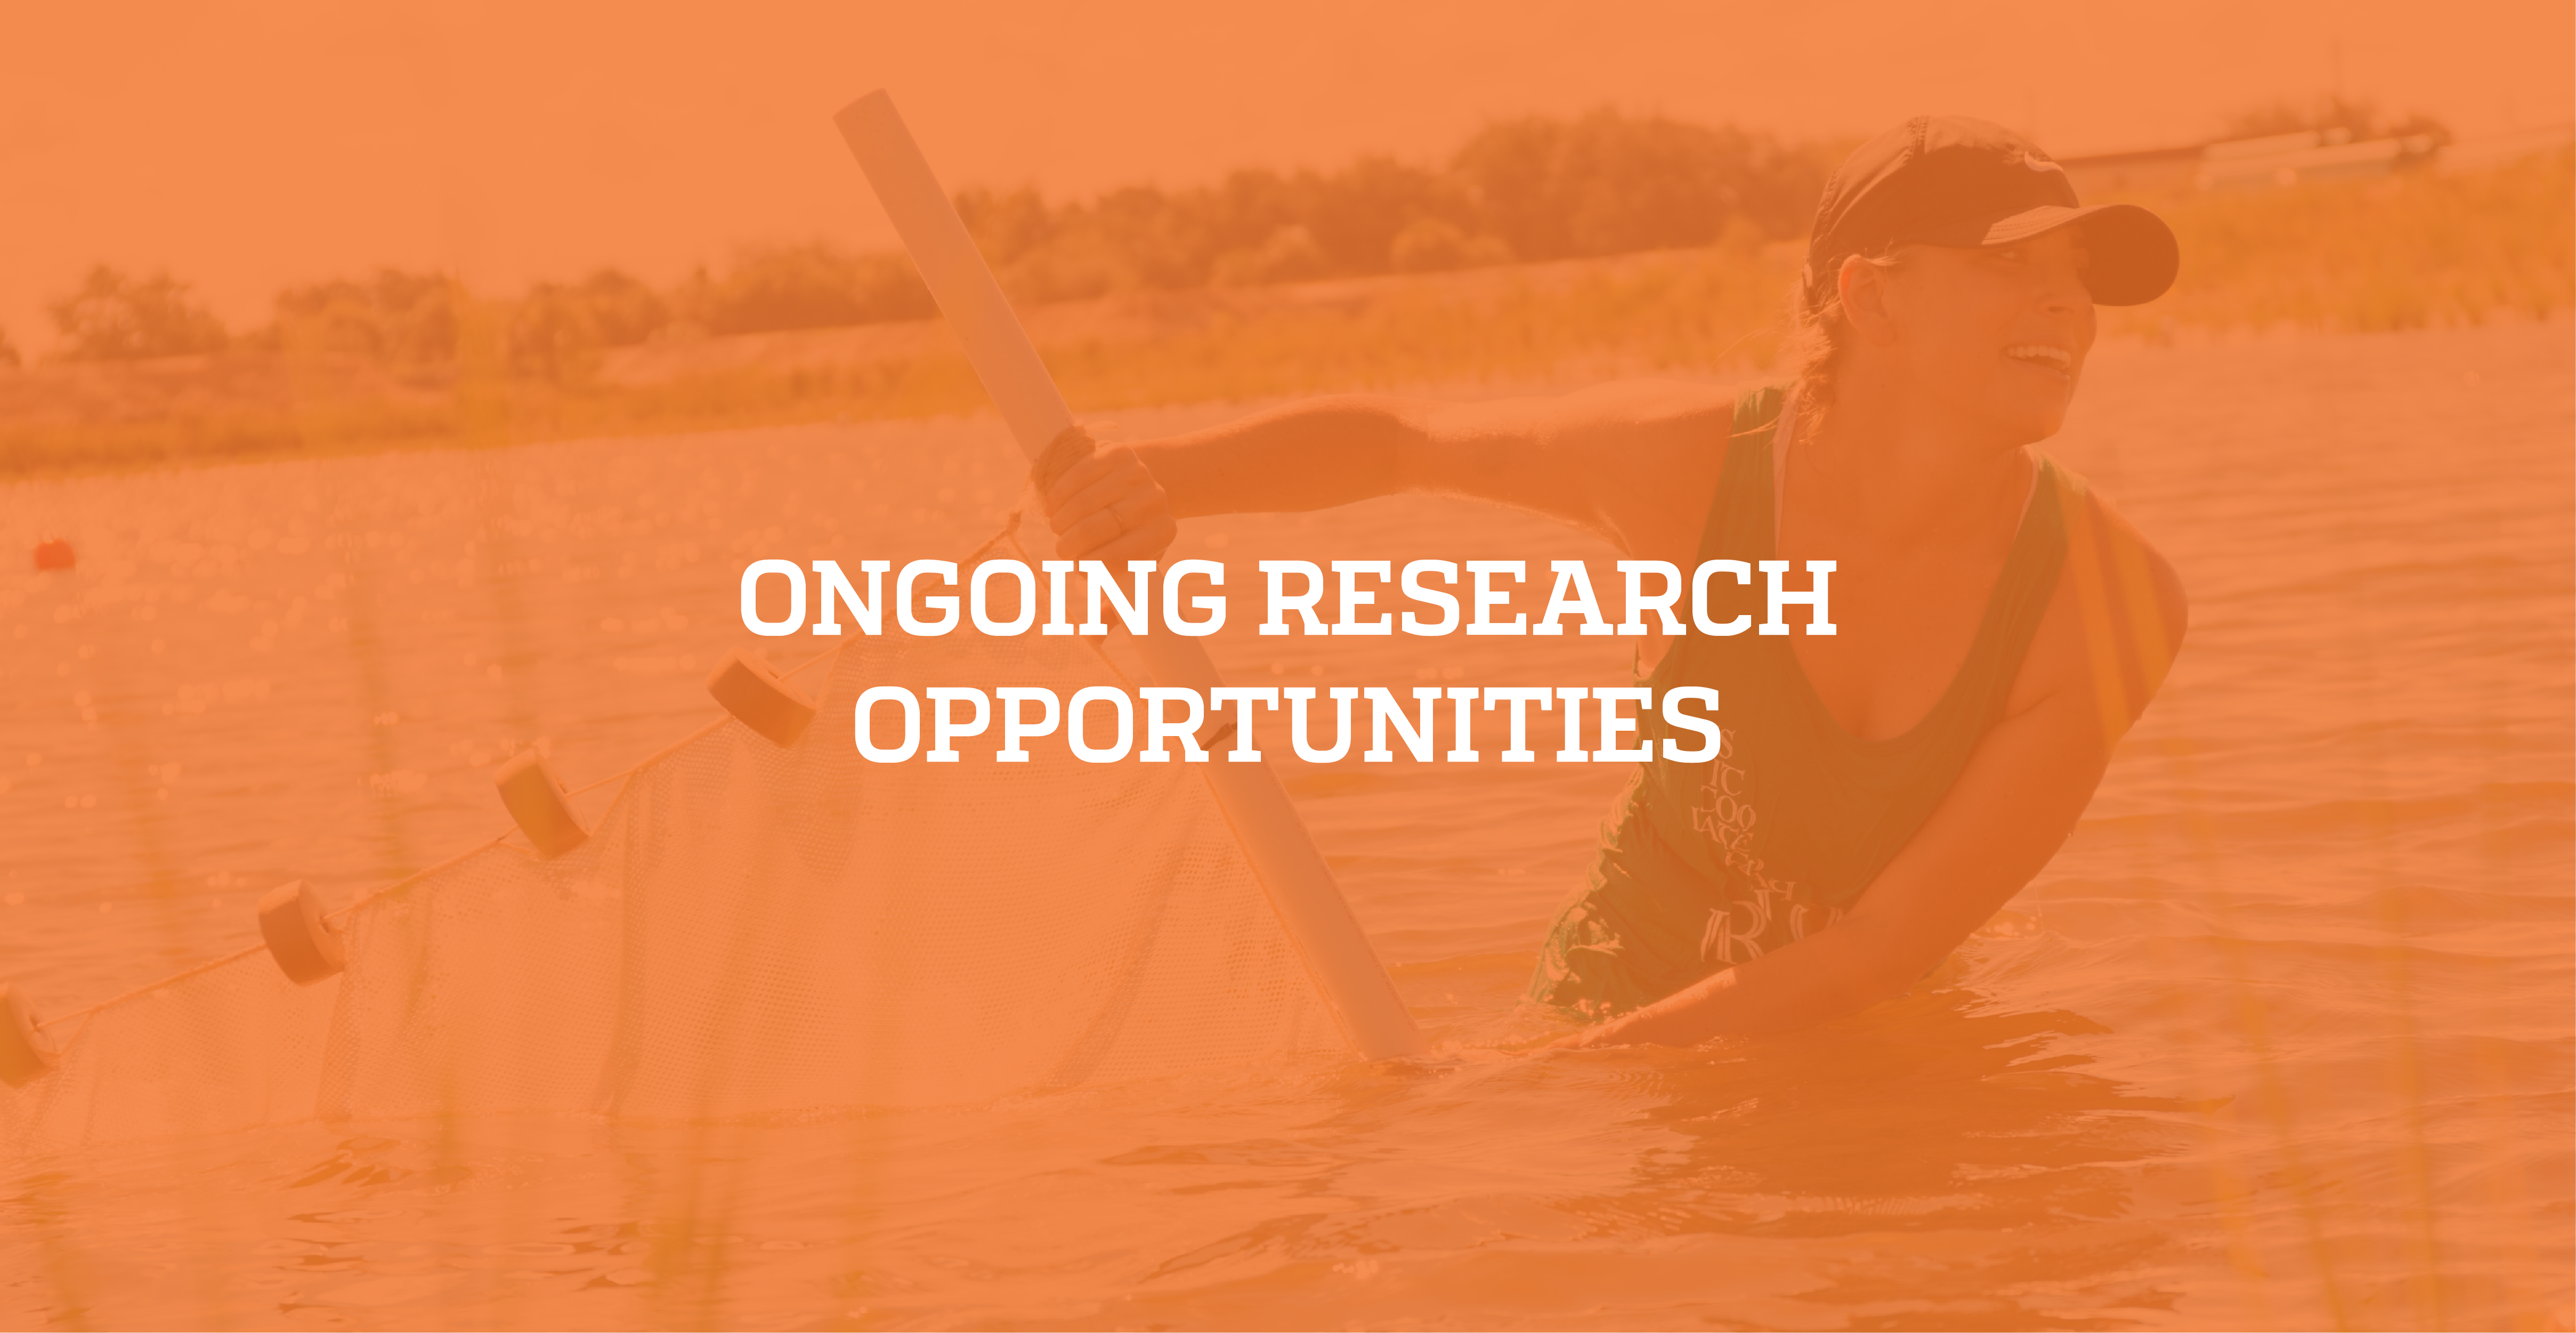 Click here for ongoing research opportunities